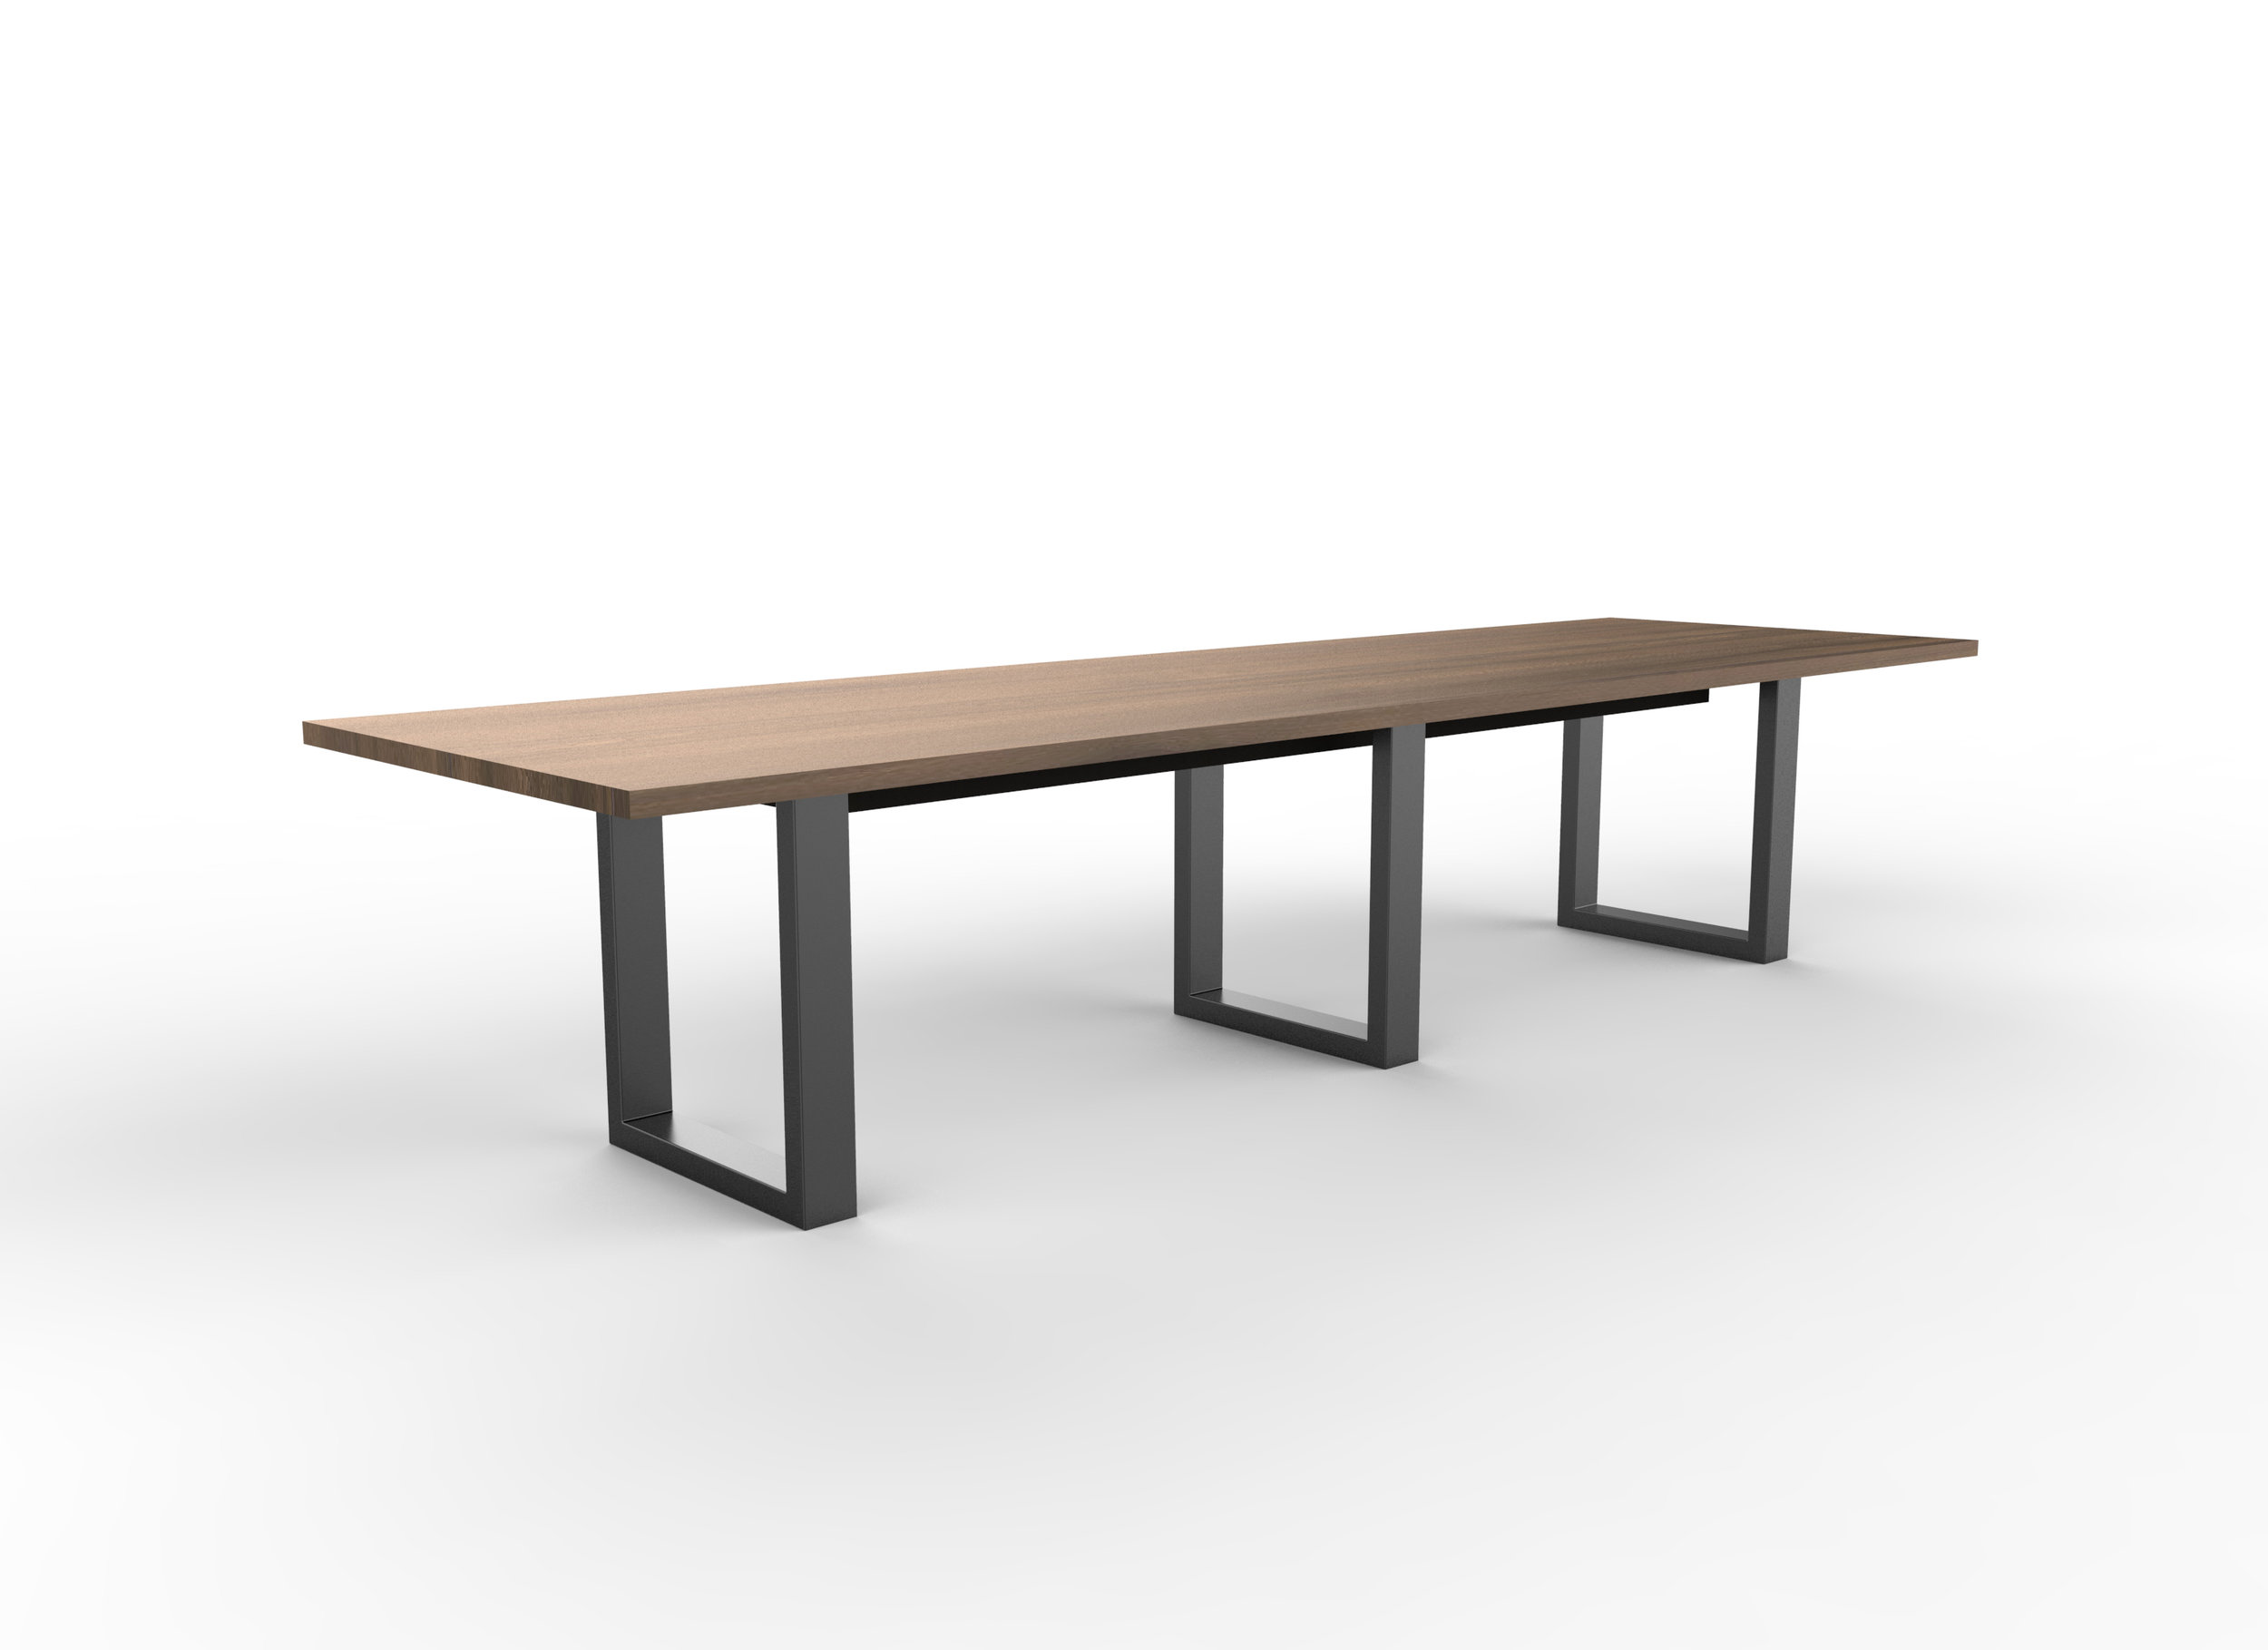 Brower table in Clear Walnut top and Matte Black base